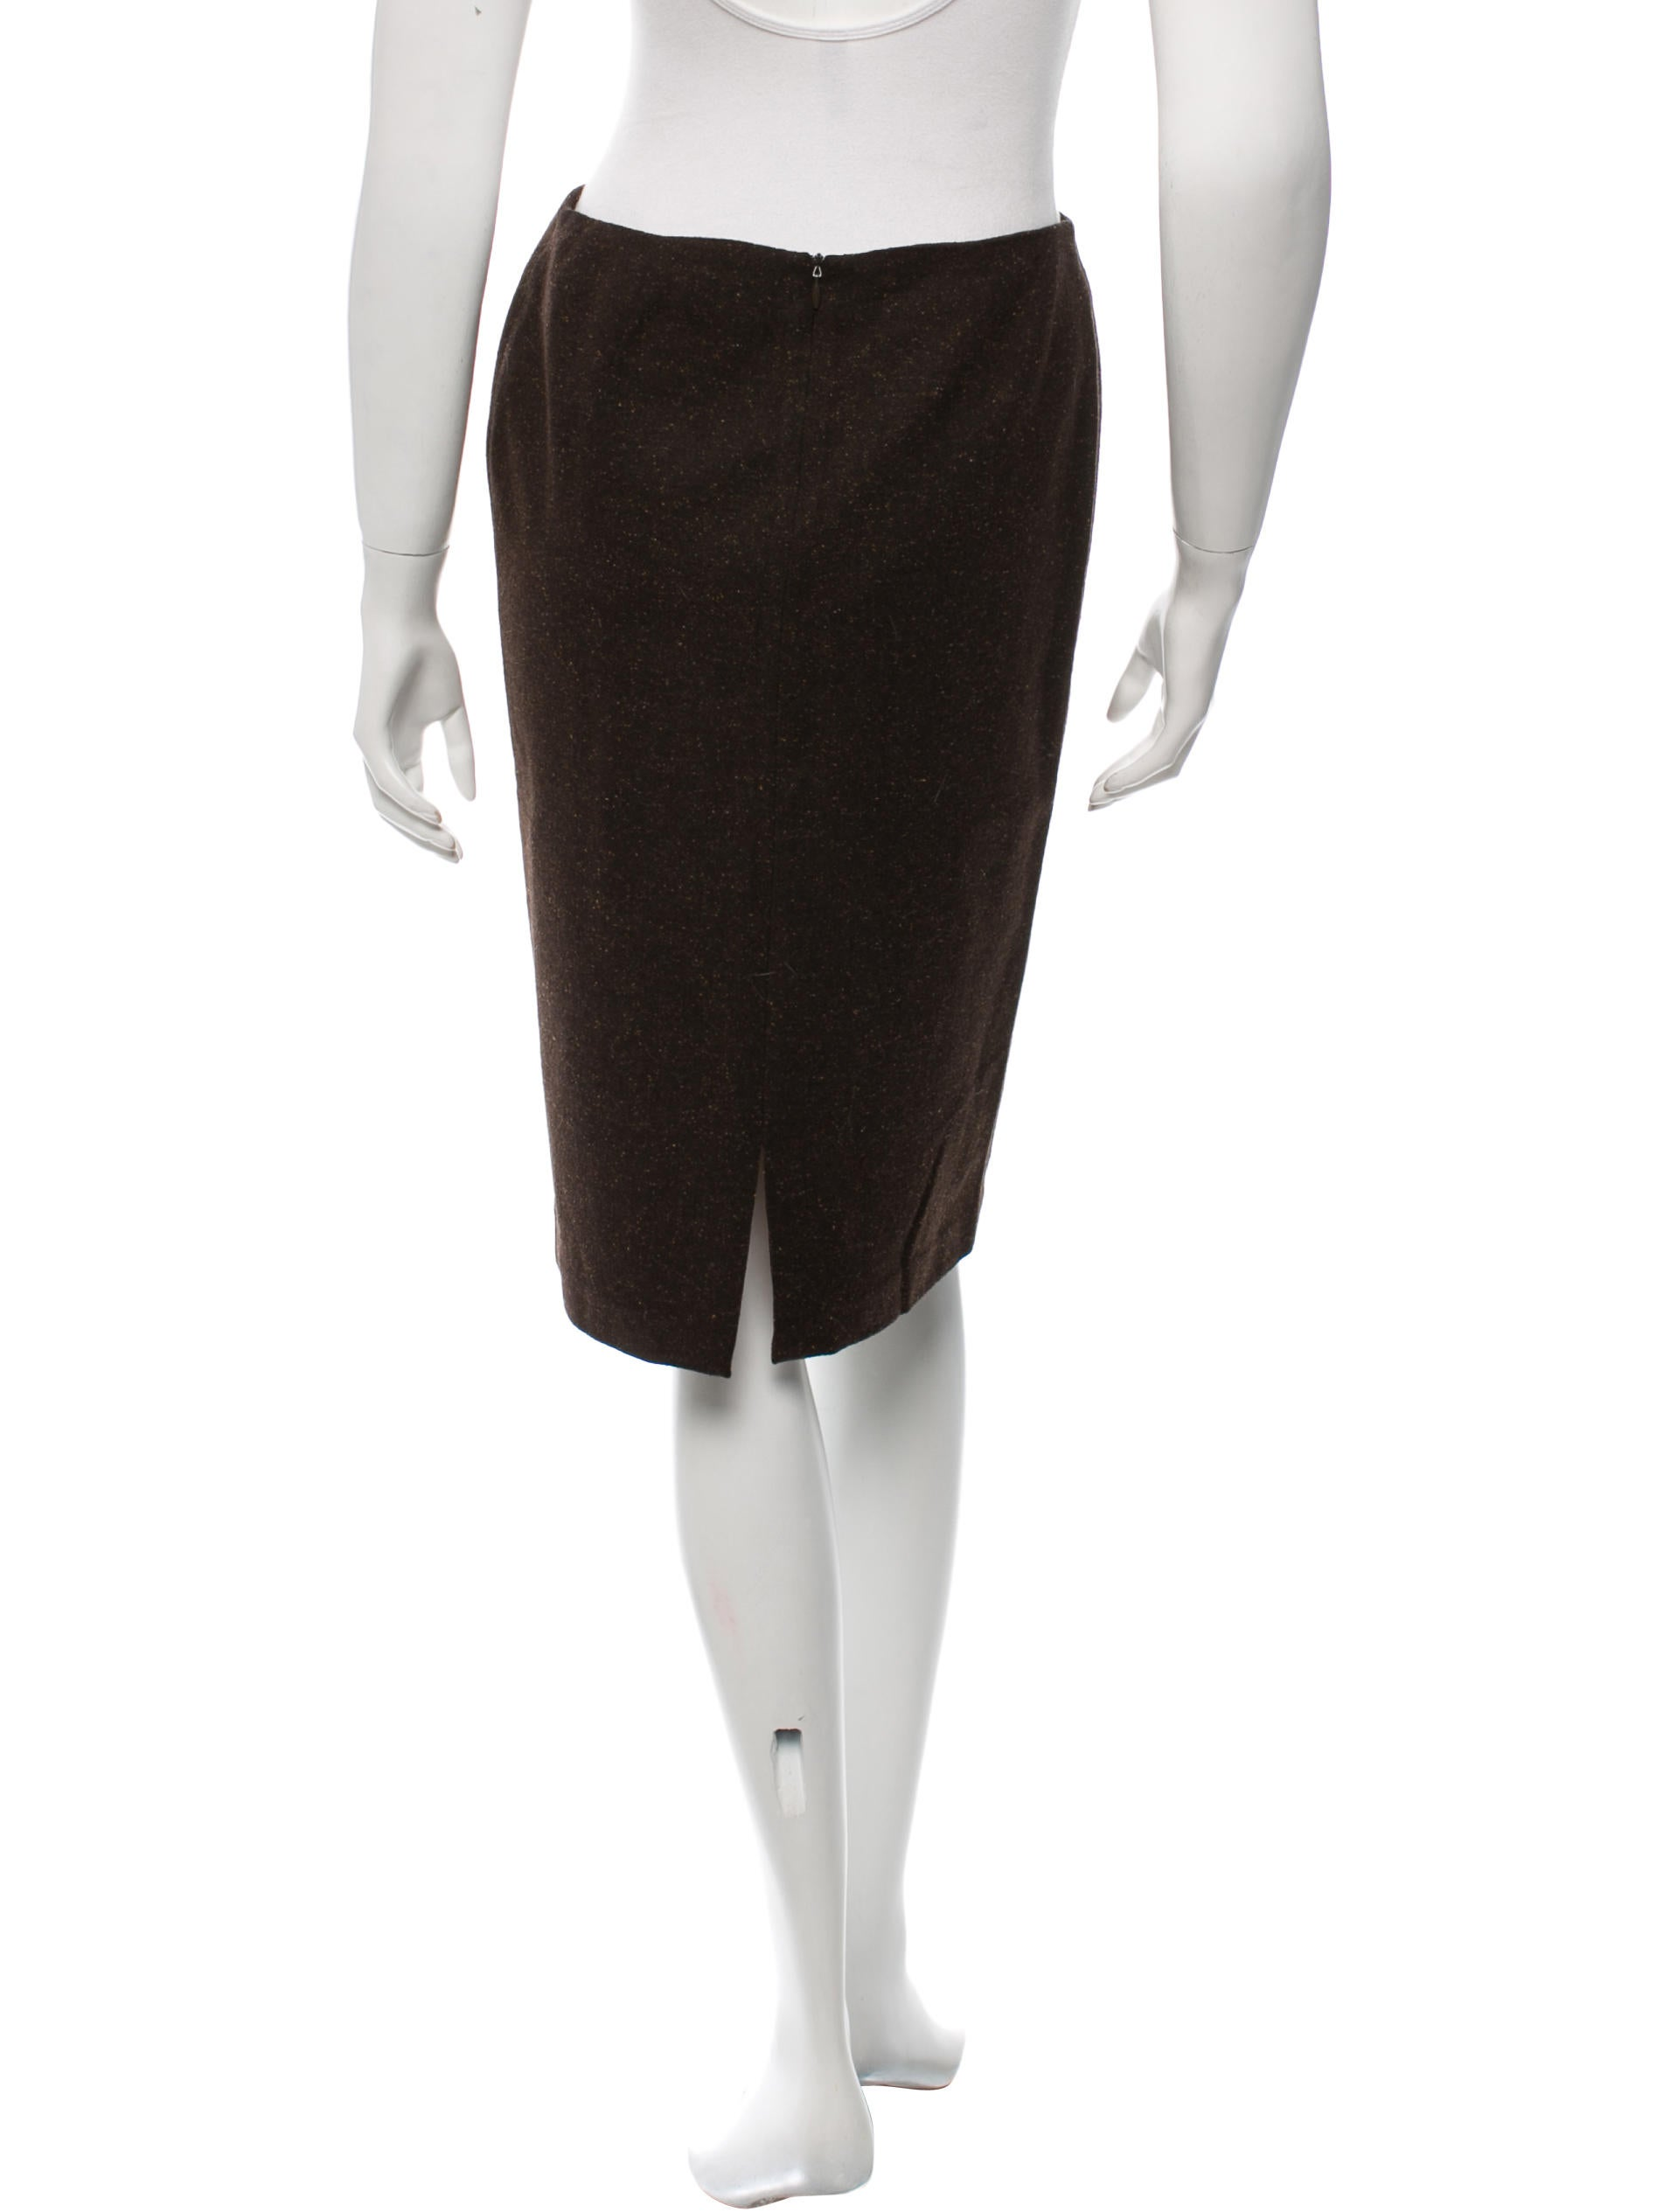 d g knee length pencil skirt clothing wdg30615 the